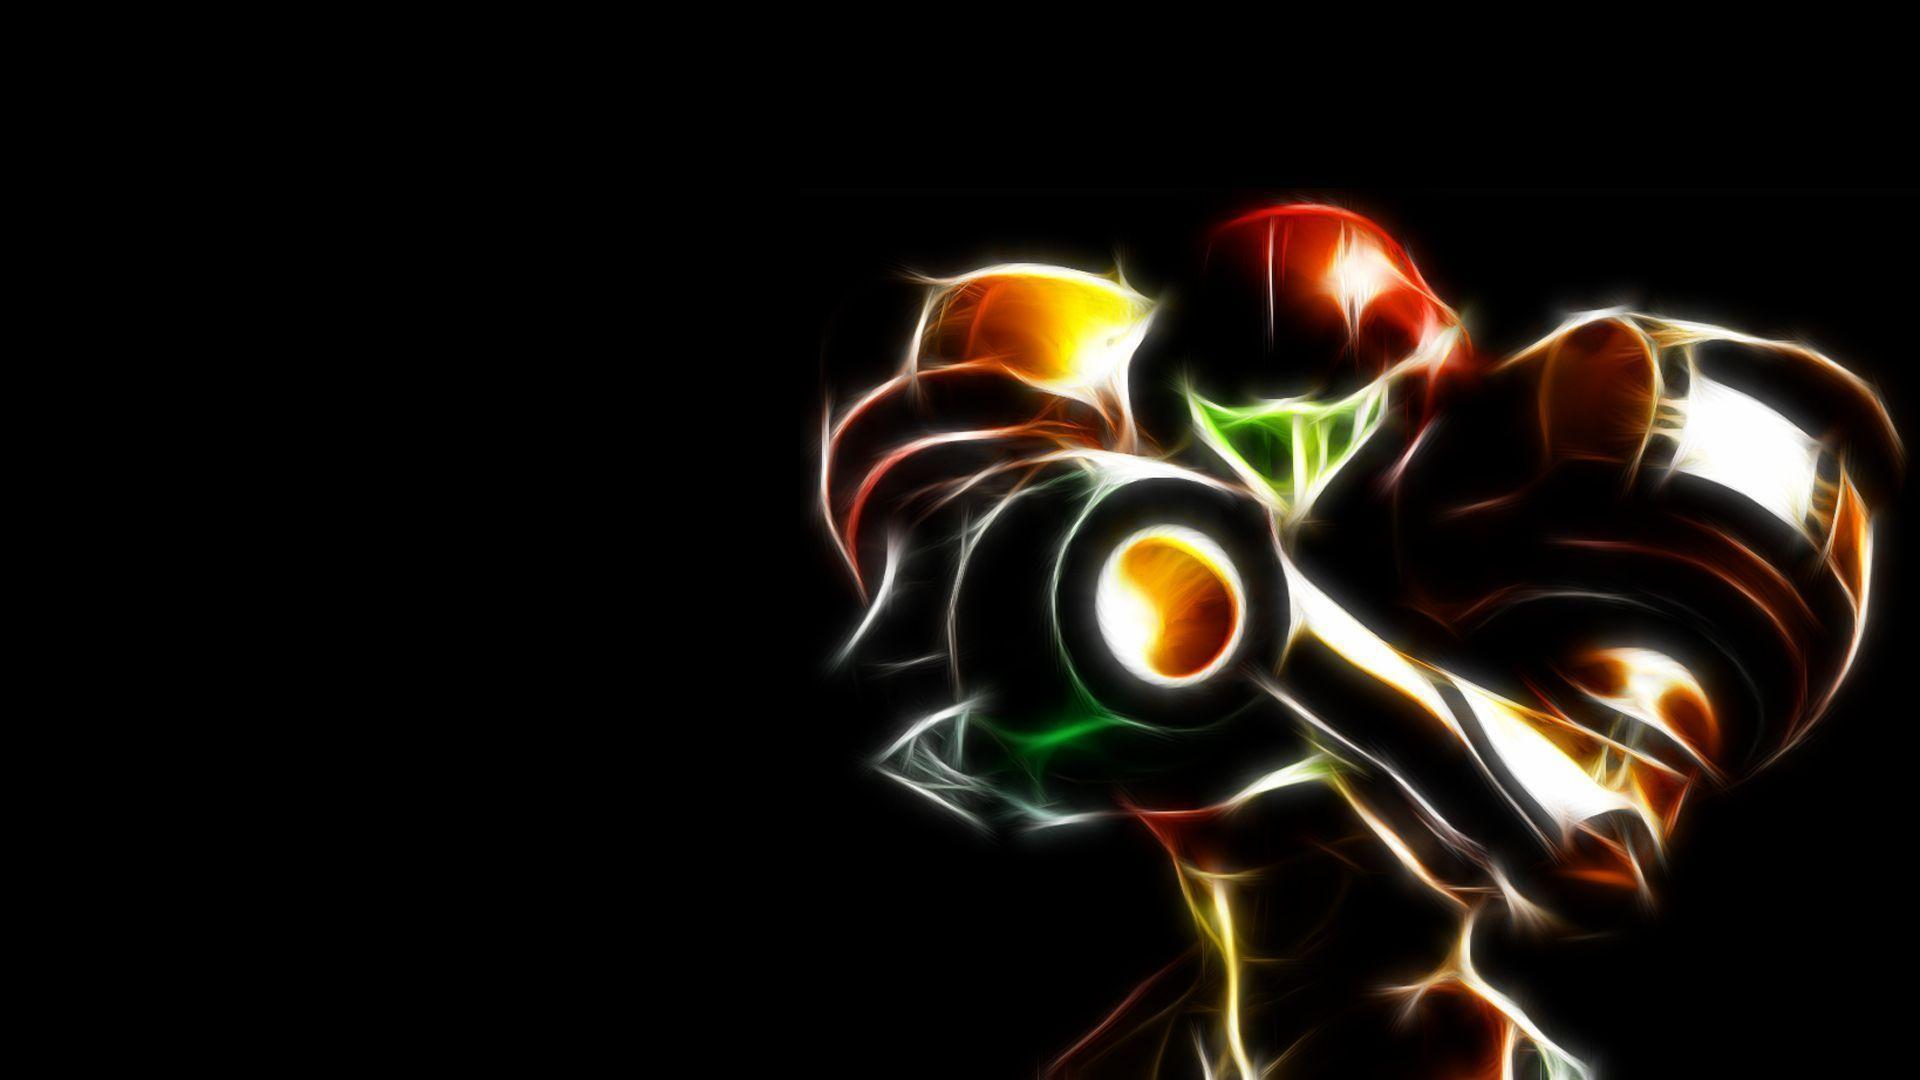 Image For > Metroid Prime Wallpapers 1920x1080